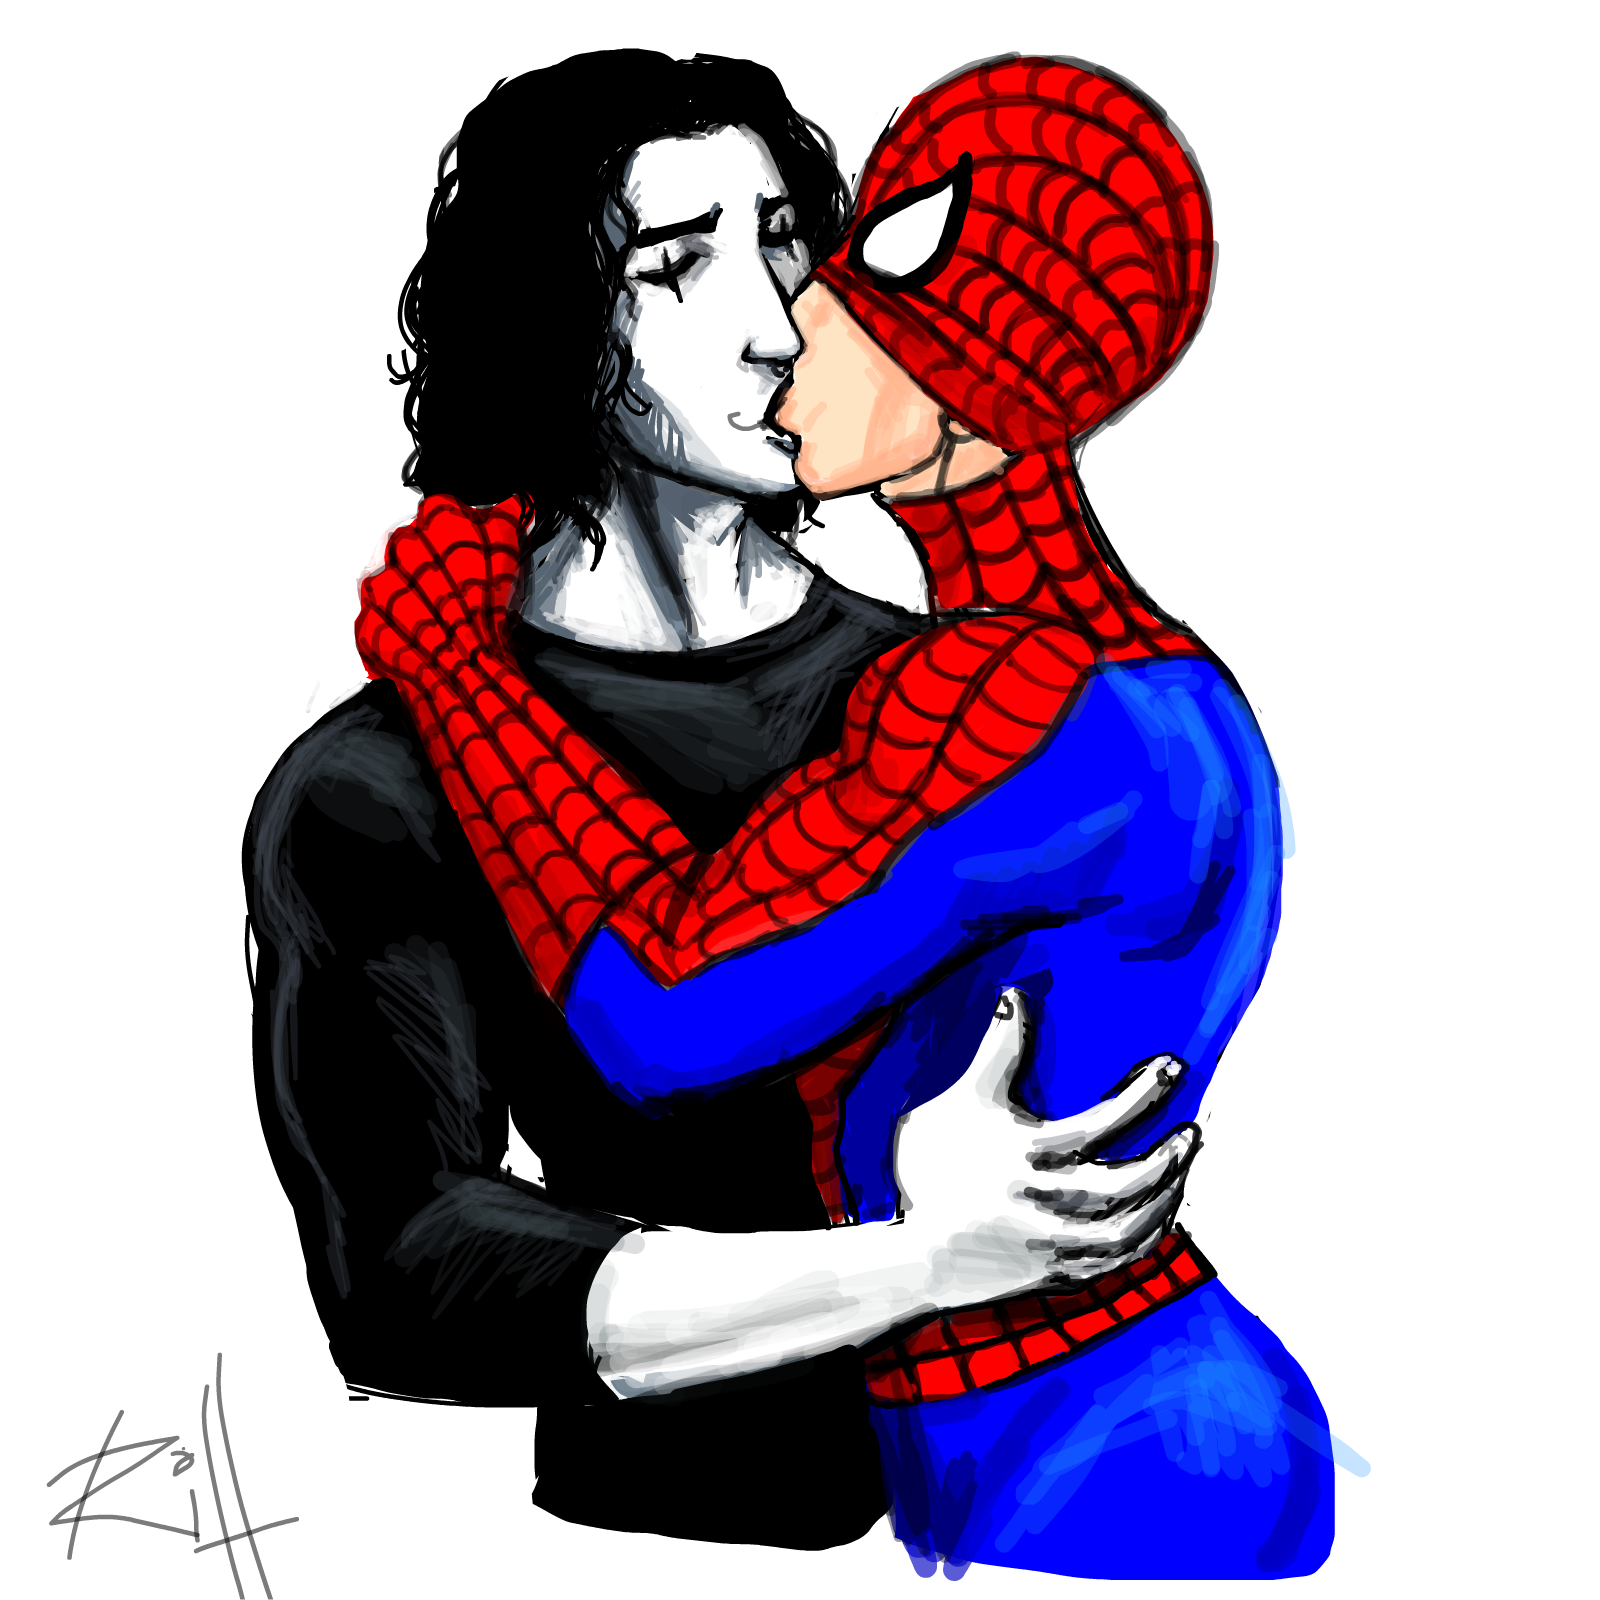 Spidey/The Crow